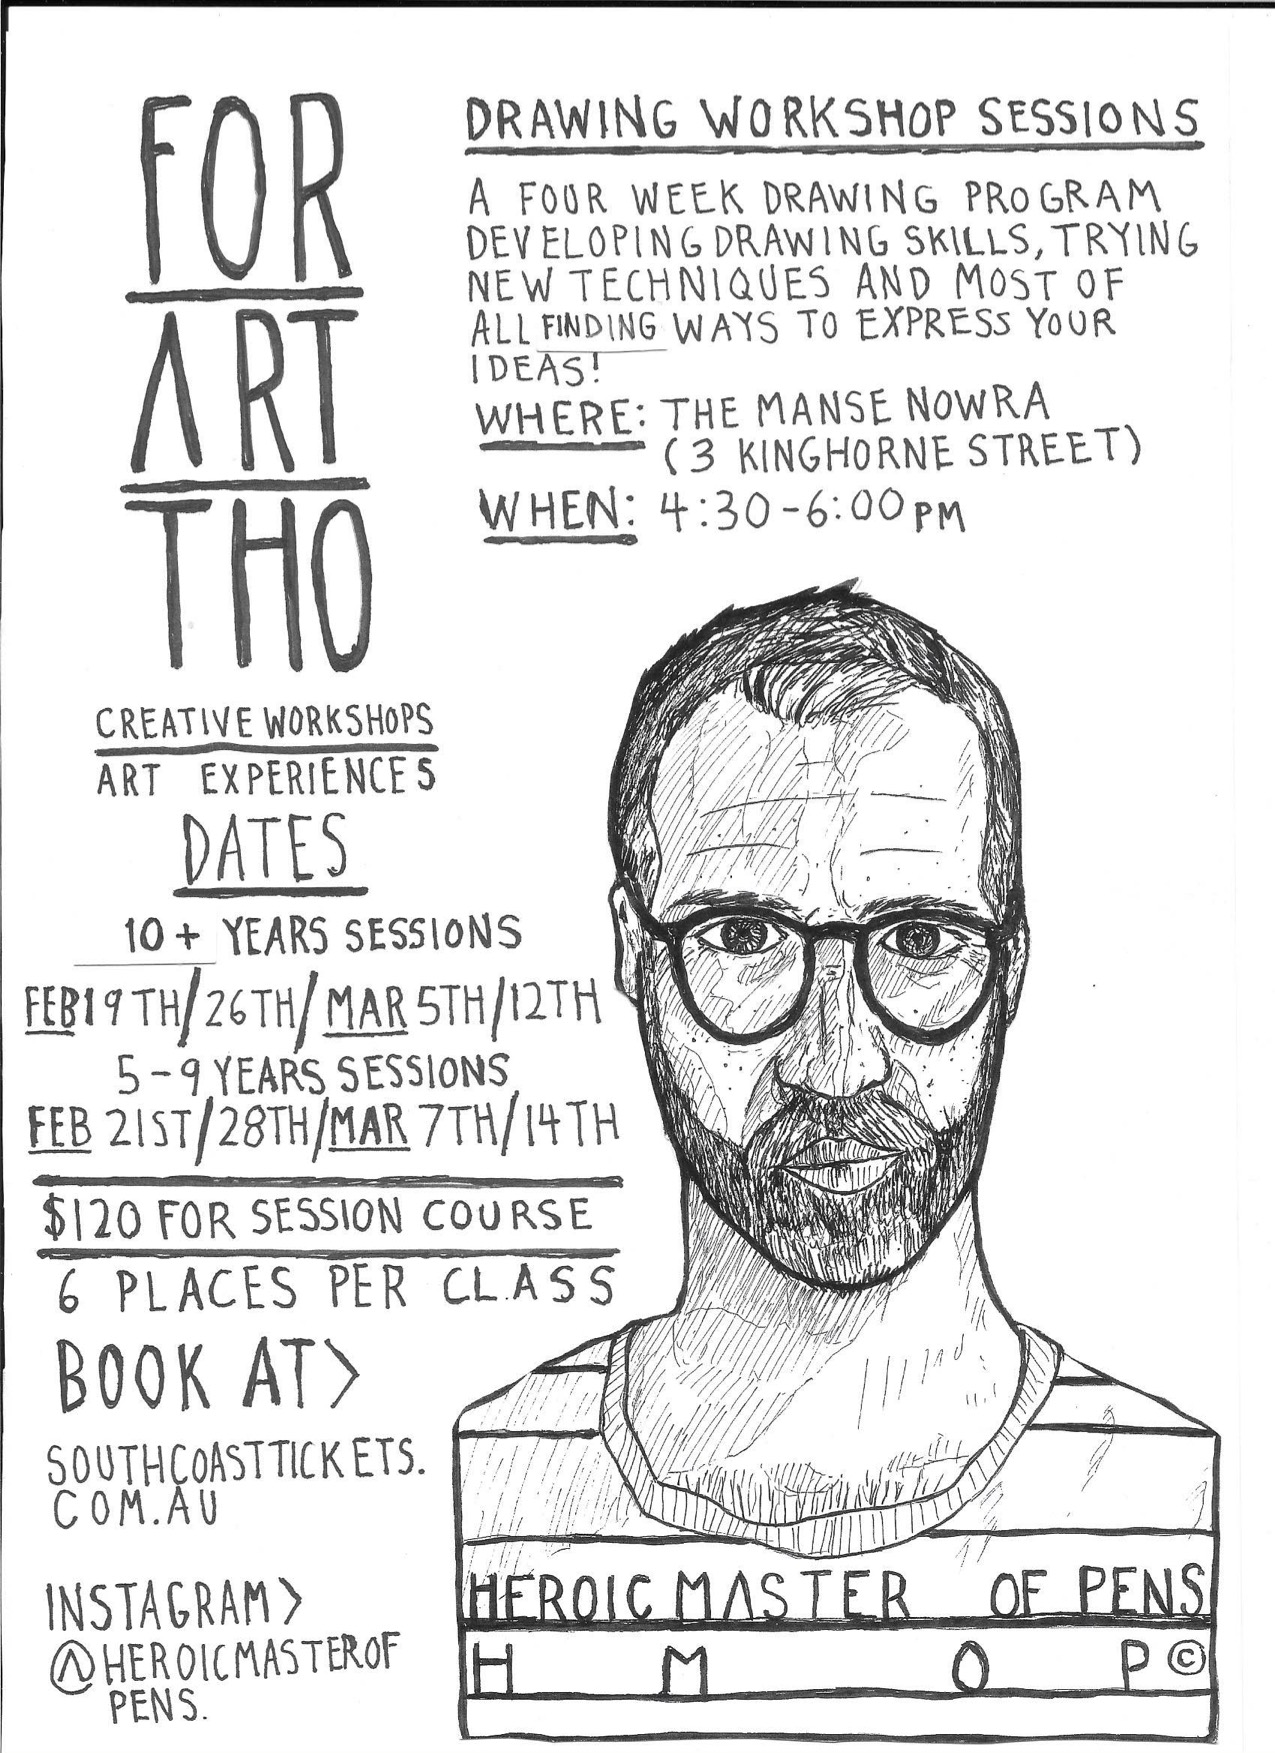 For Art Tho /Heroic Master Of Pens / Drawing Workshop Sessions